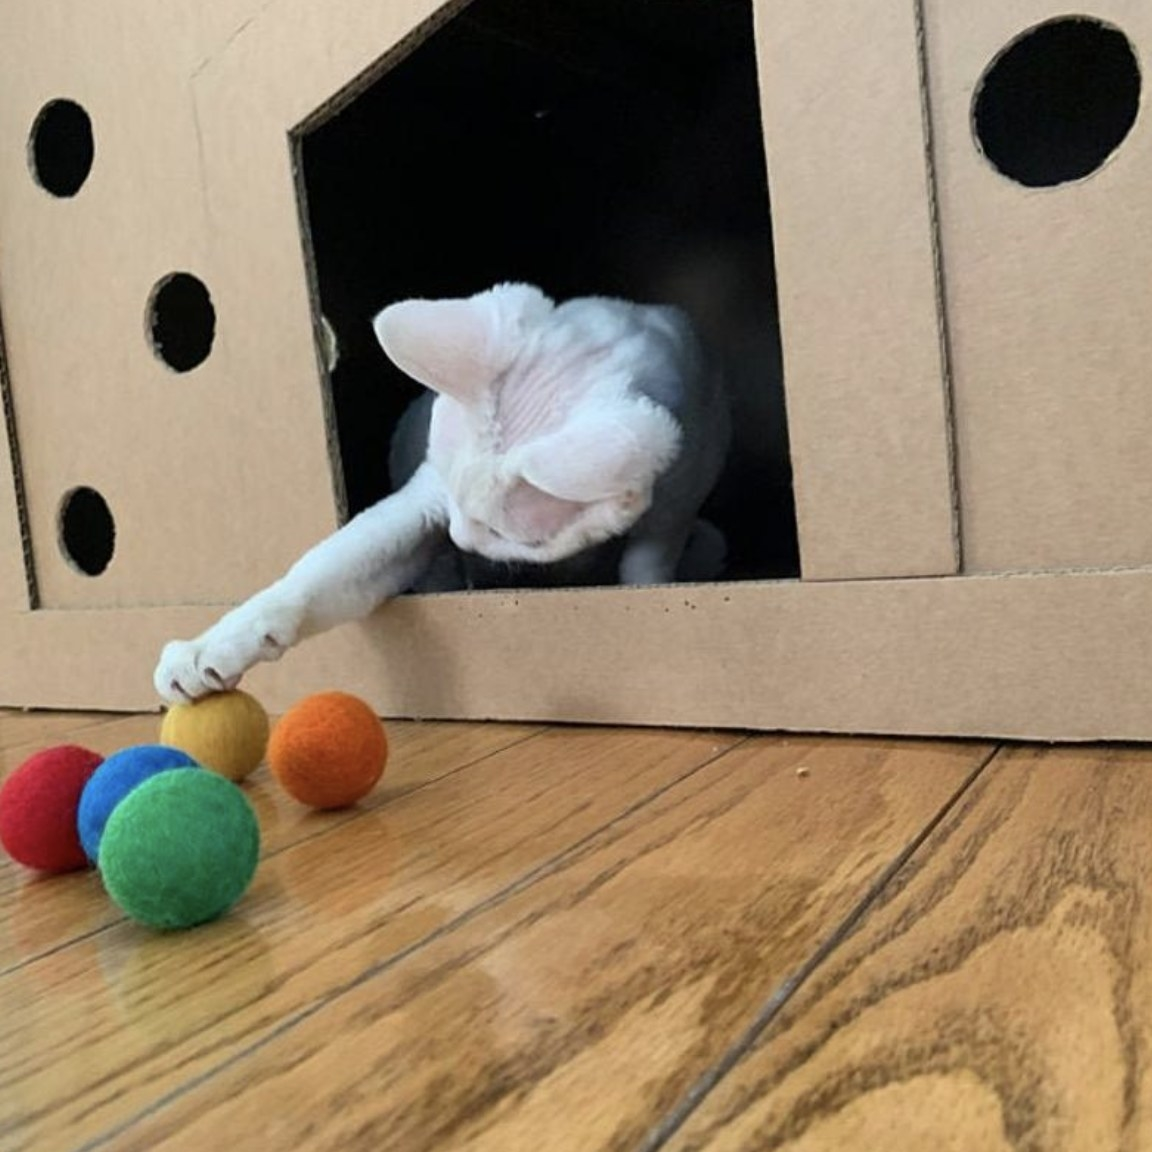 A cat playing with felt balls